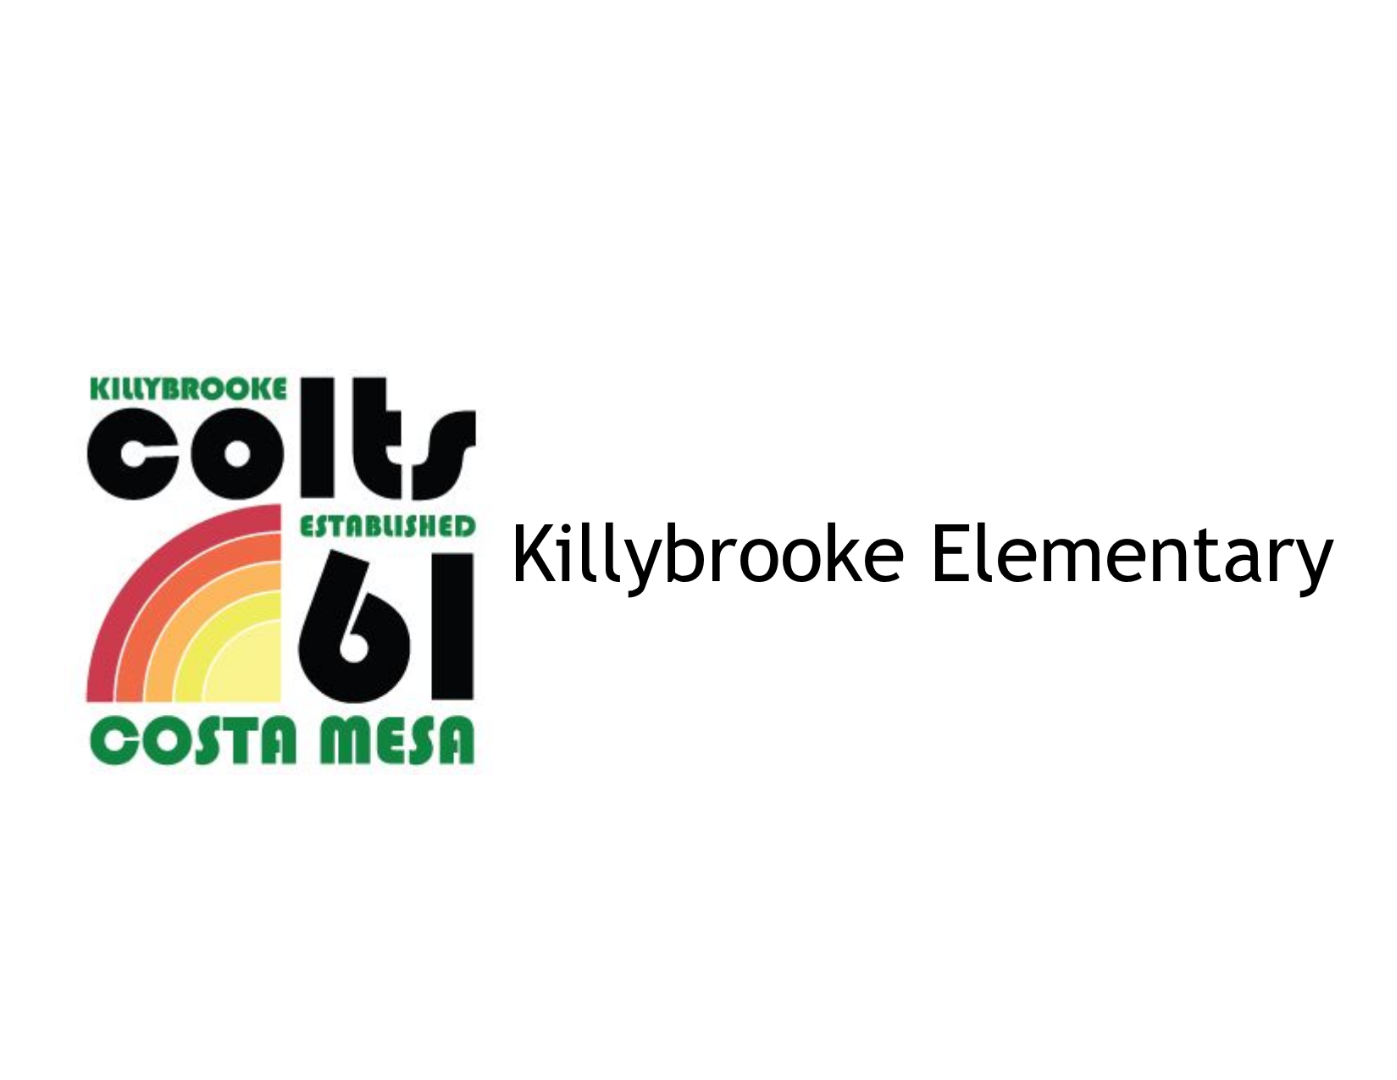 Killybrooke Elementary Website